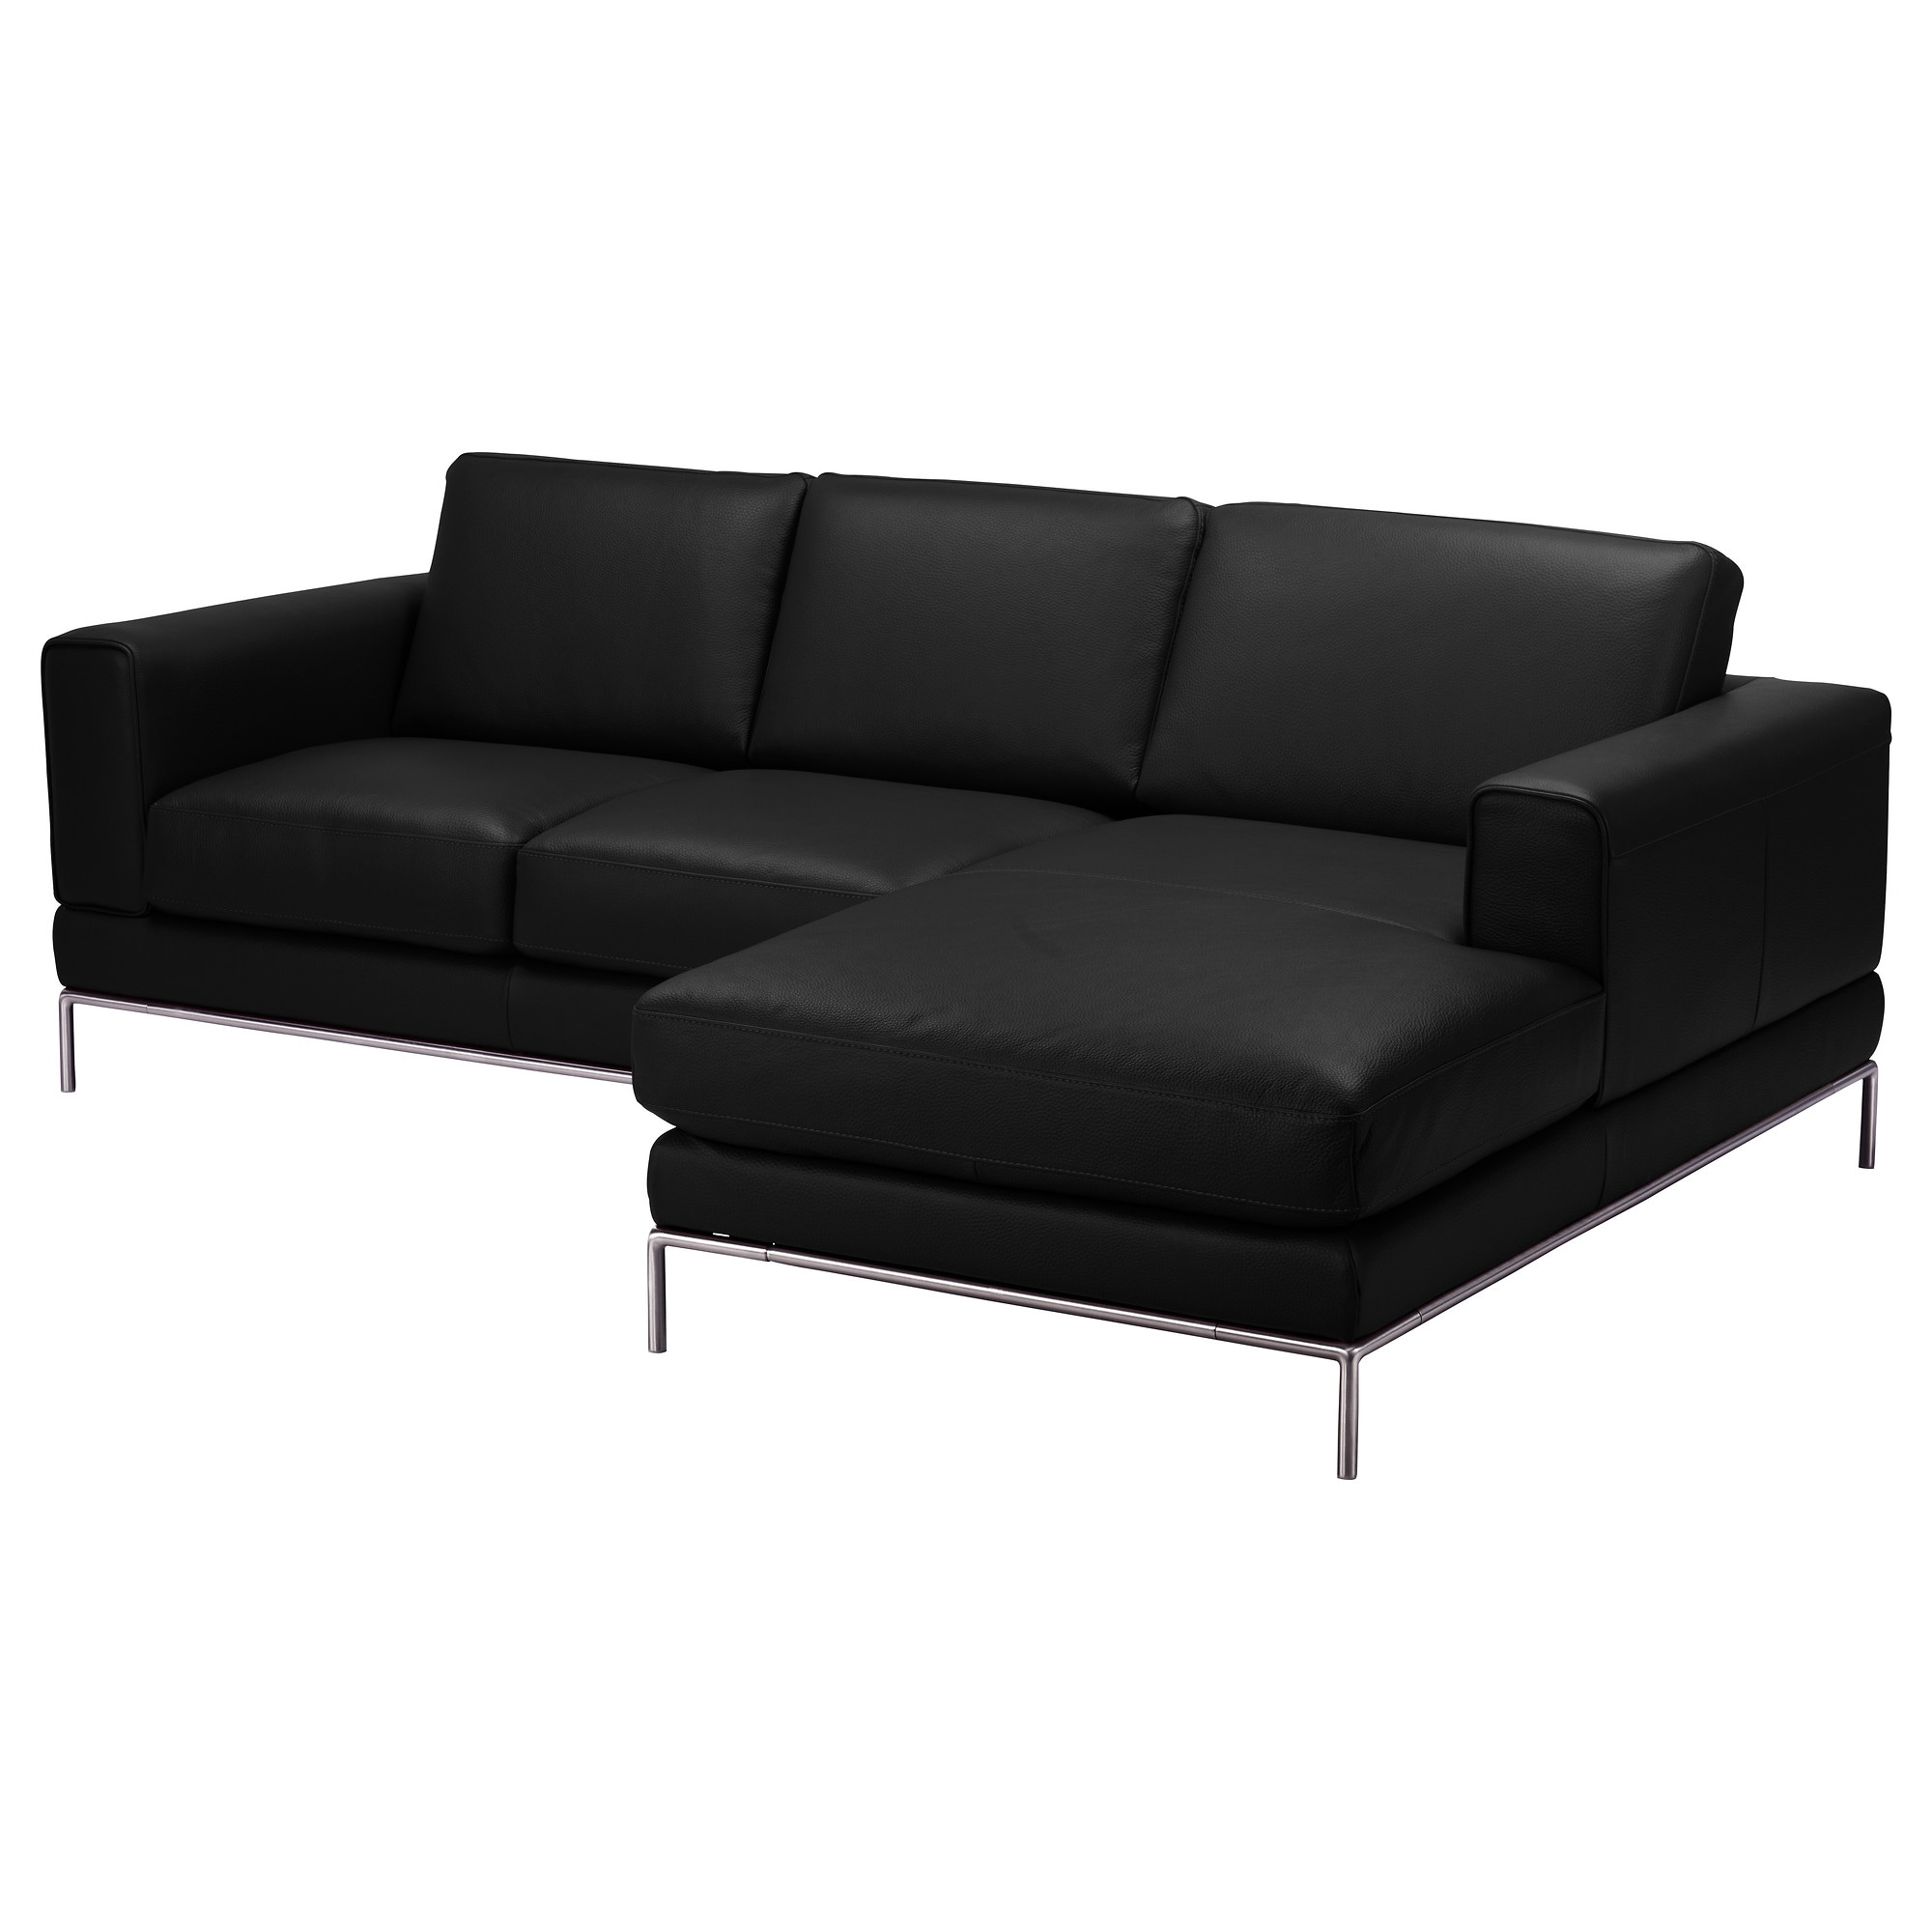 breites sofa best breites sofa with breites sofa cheap sofa sessel setbreites bett with. Black Bedroom Furniture Sets. Home Design Ideas